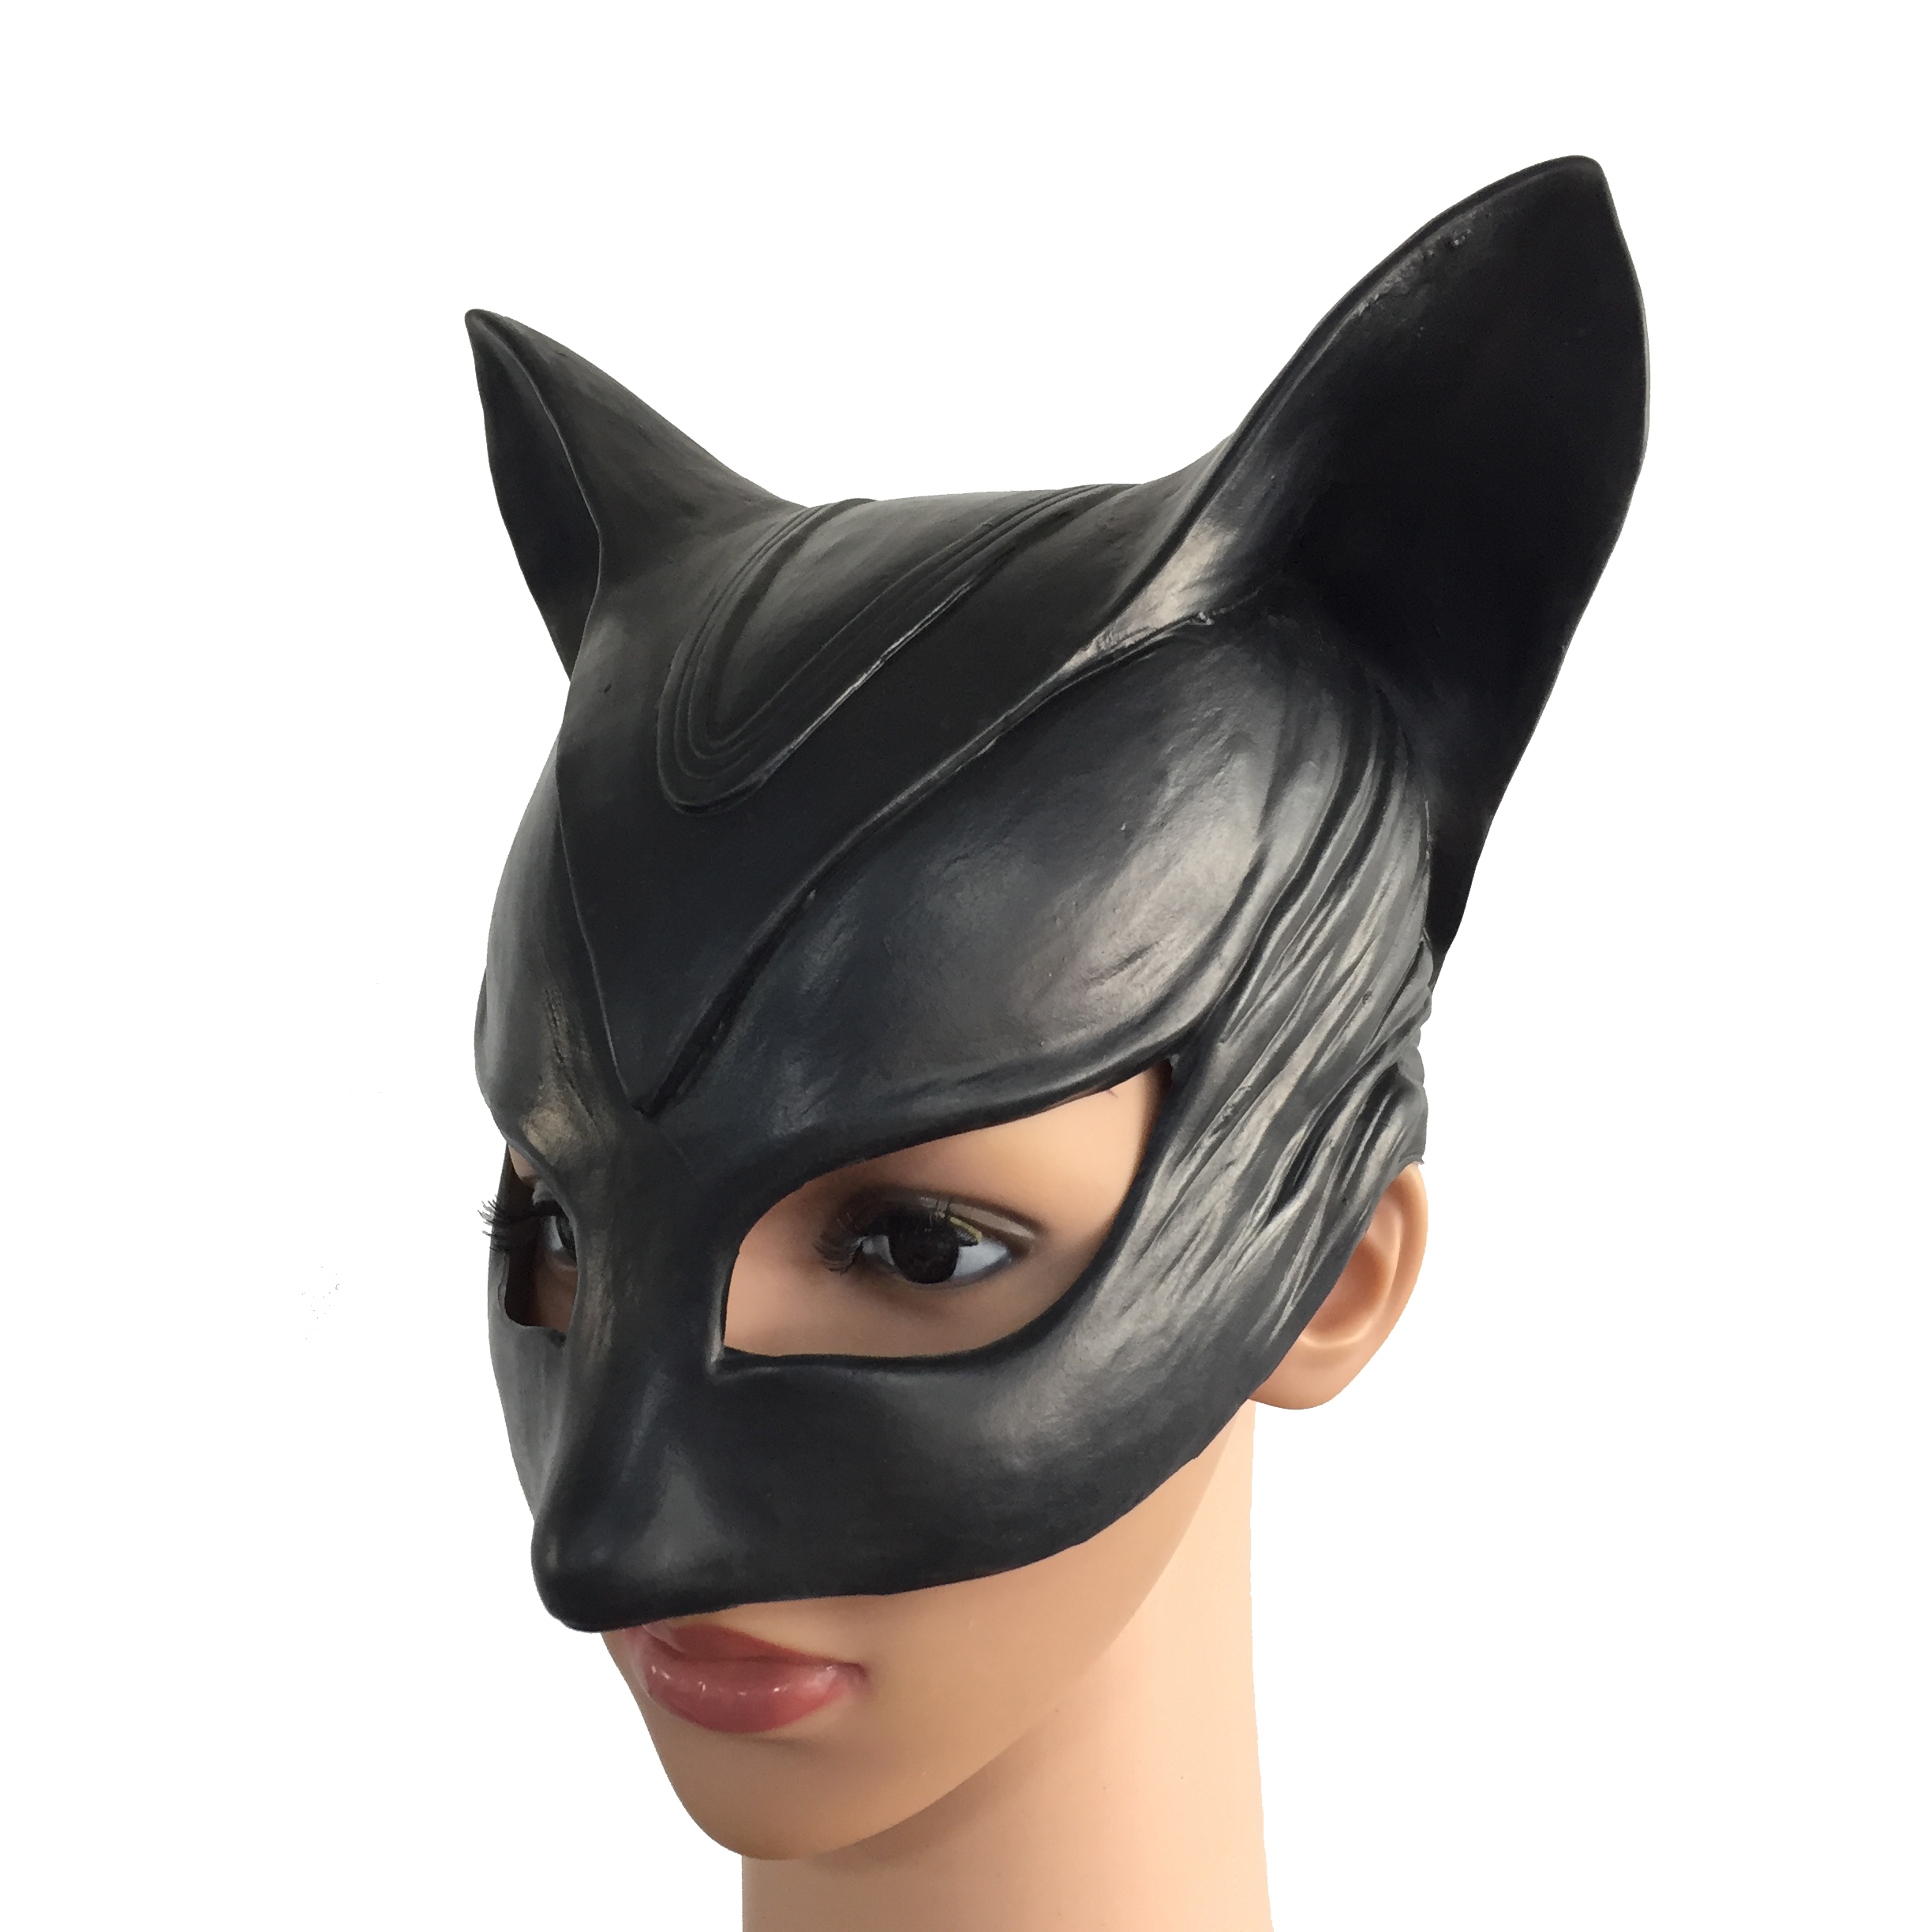 Children Halloween Masquerade Party Batman Costume Batman Mask Batman Helmet